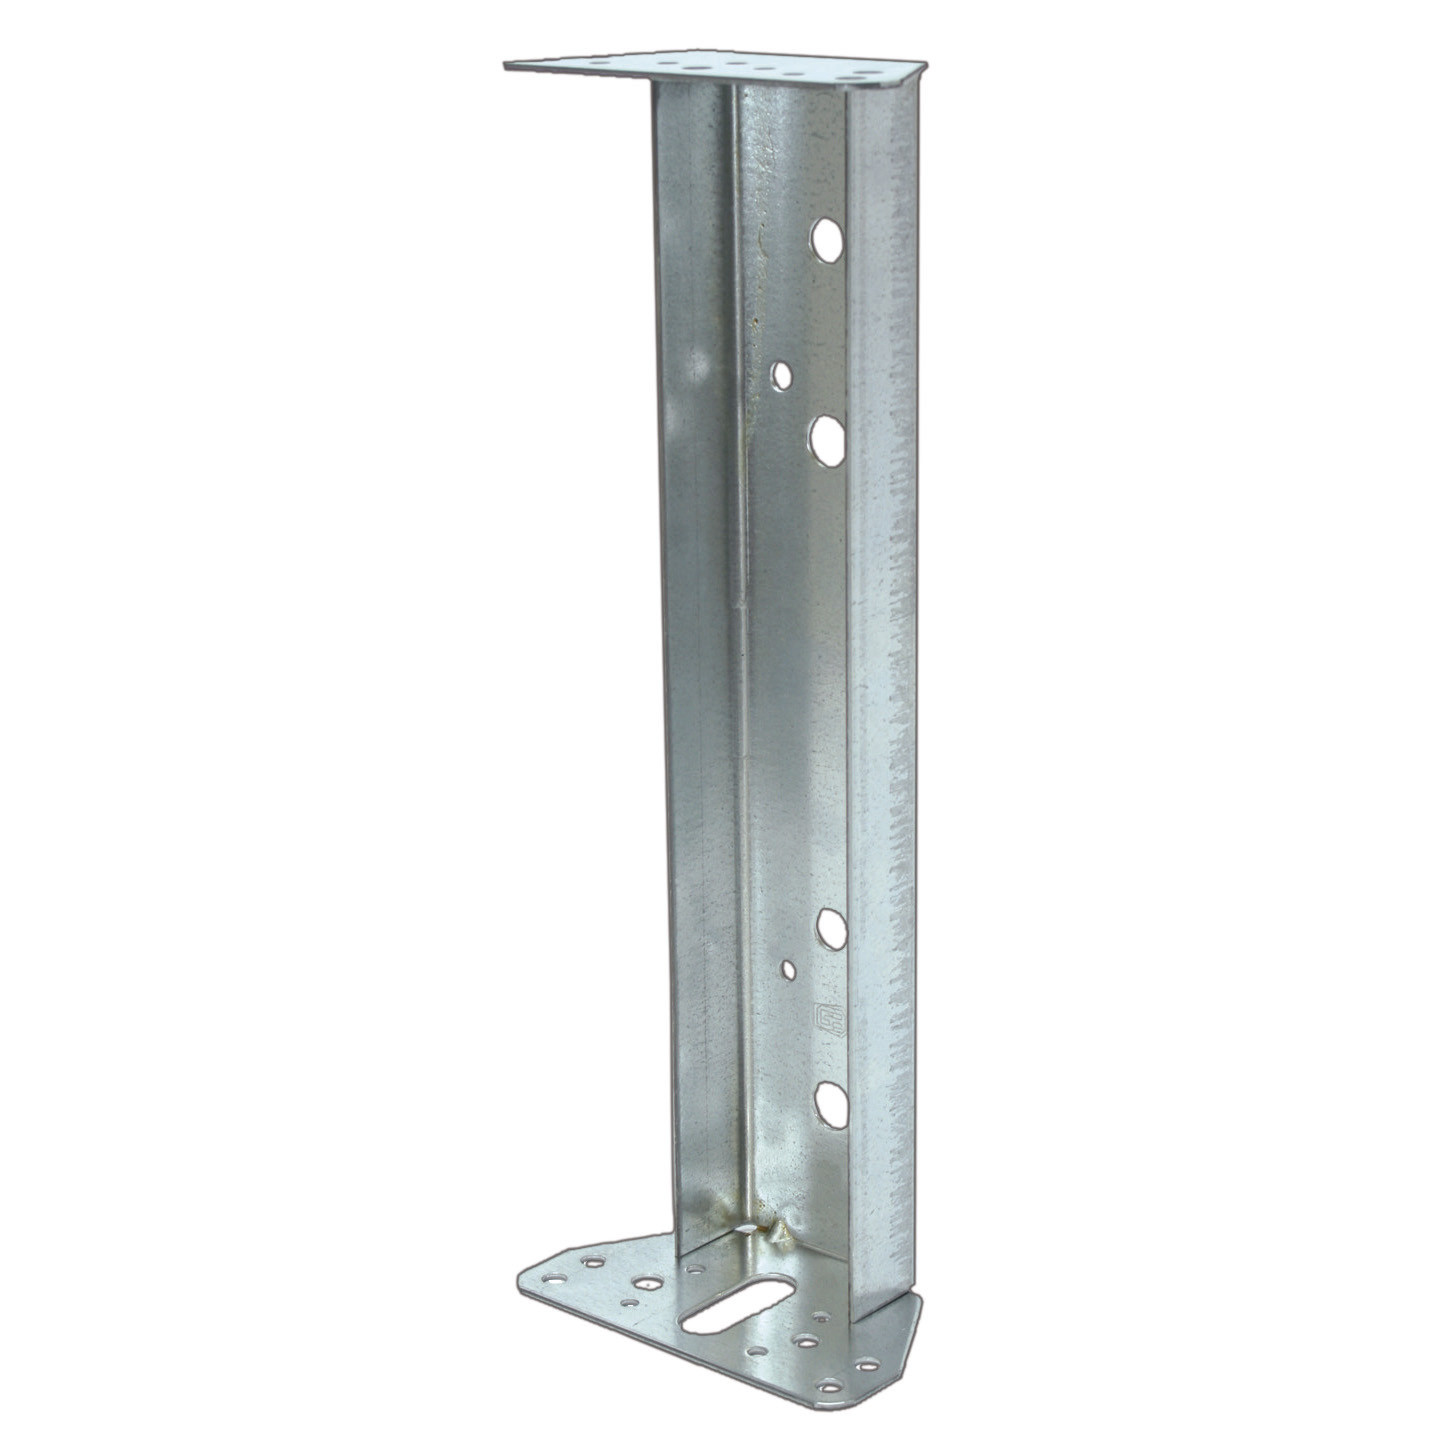 Window front frame support 60x70x400 115x2 ZM